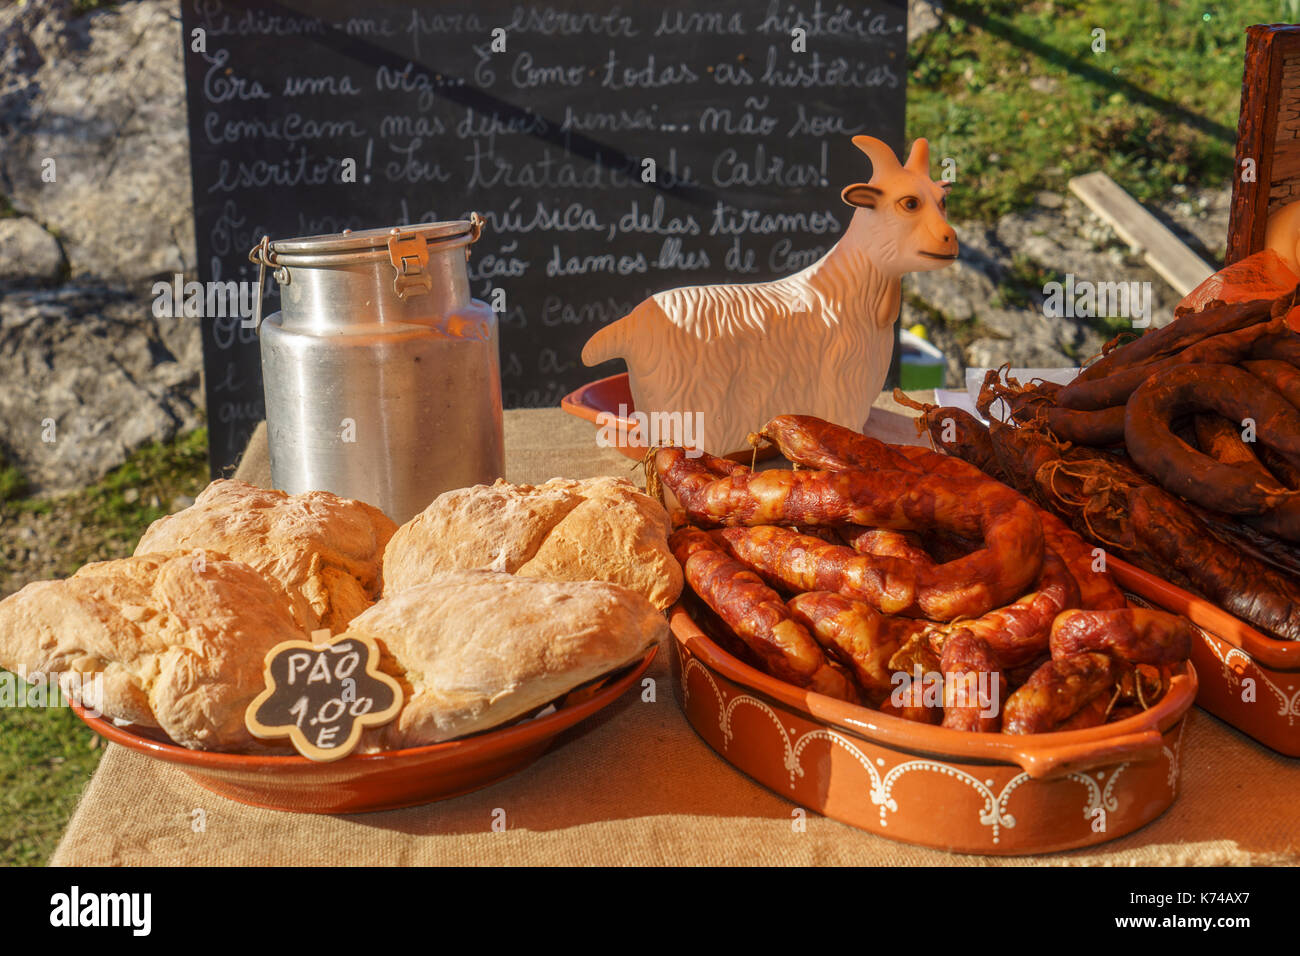 Bread and Portuguese sausages on sale at outdoor event in Portugal - Stock Image